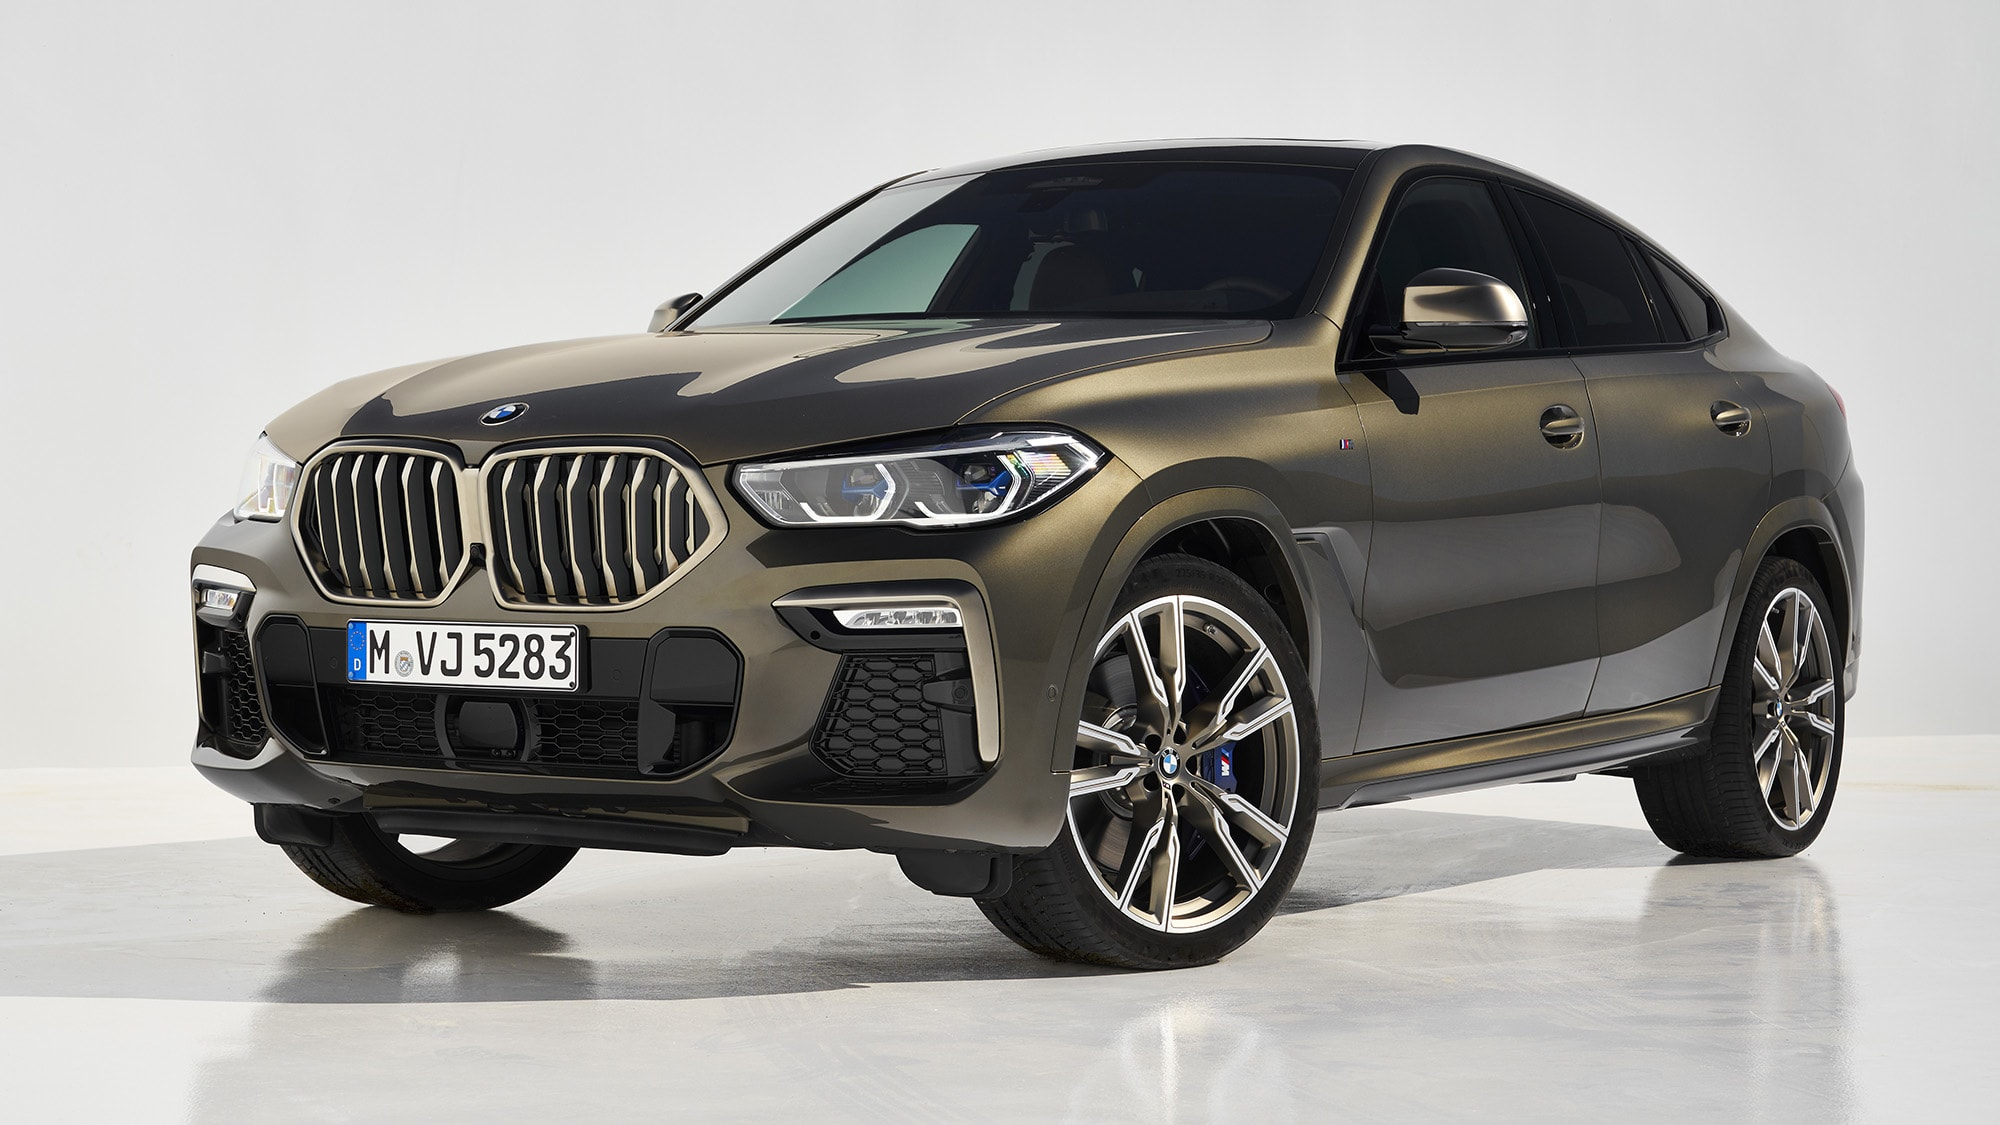 2020 Bmw X6 Pricing And Specs Caradvice